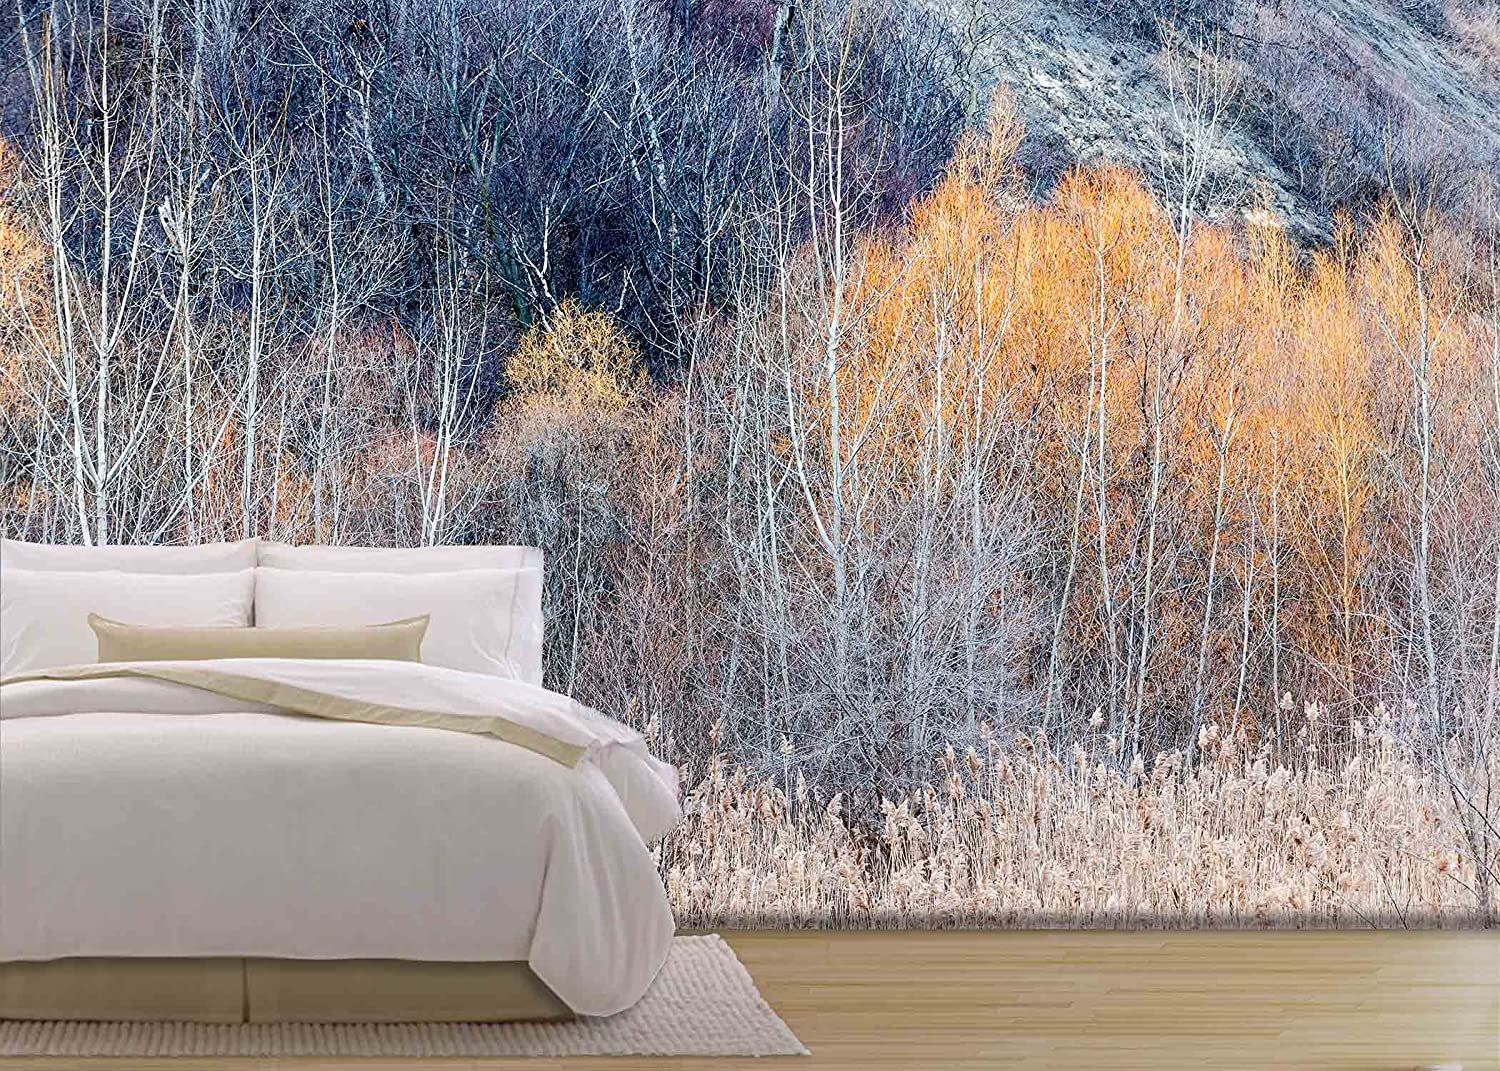 wall26 com art prints framed art canvas prints greeting wall26 background nature landscape of bare trees and grasses in winter ravine removable wall mural self adhesive large wallpaper 66x96 inches